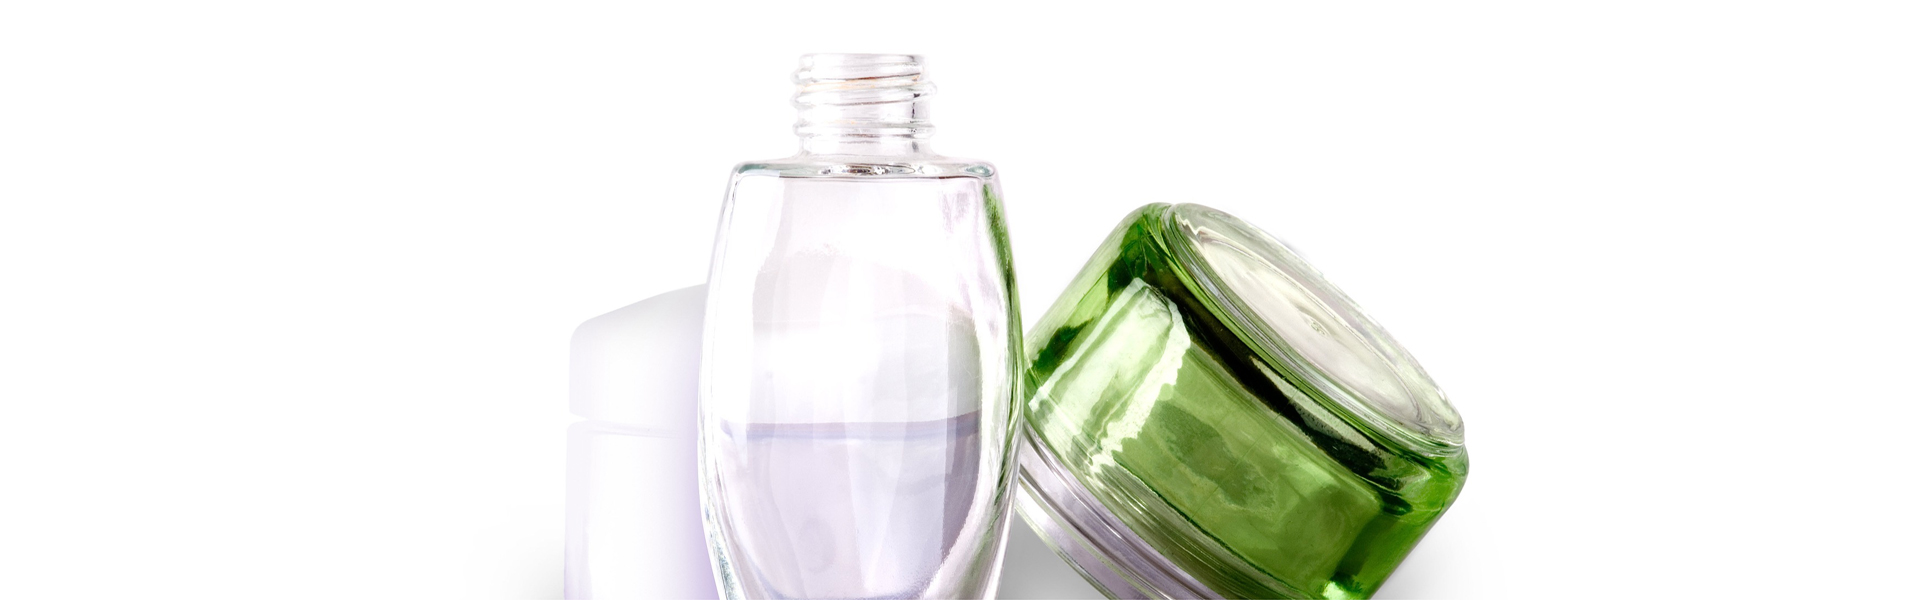 sectores-cosmetica-packaging